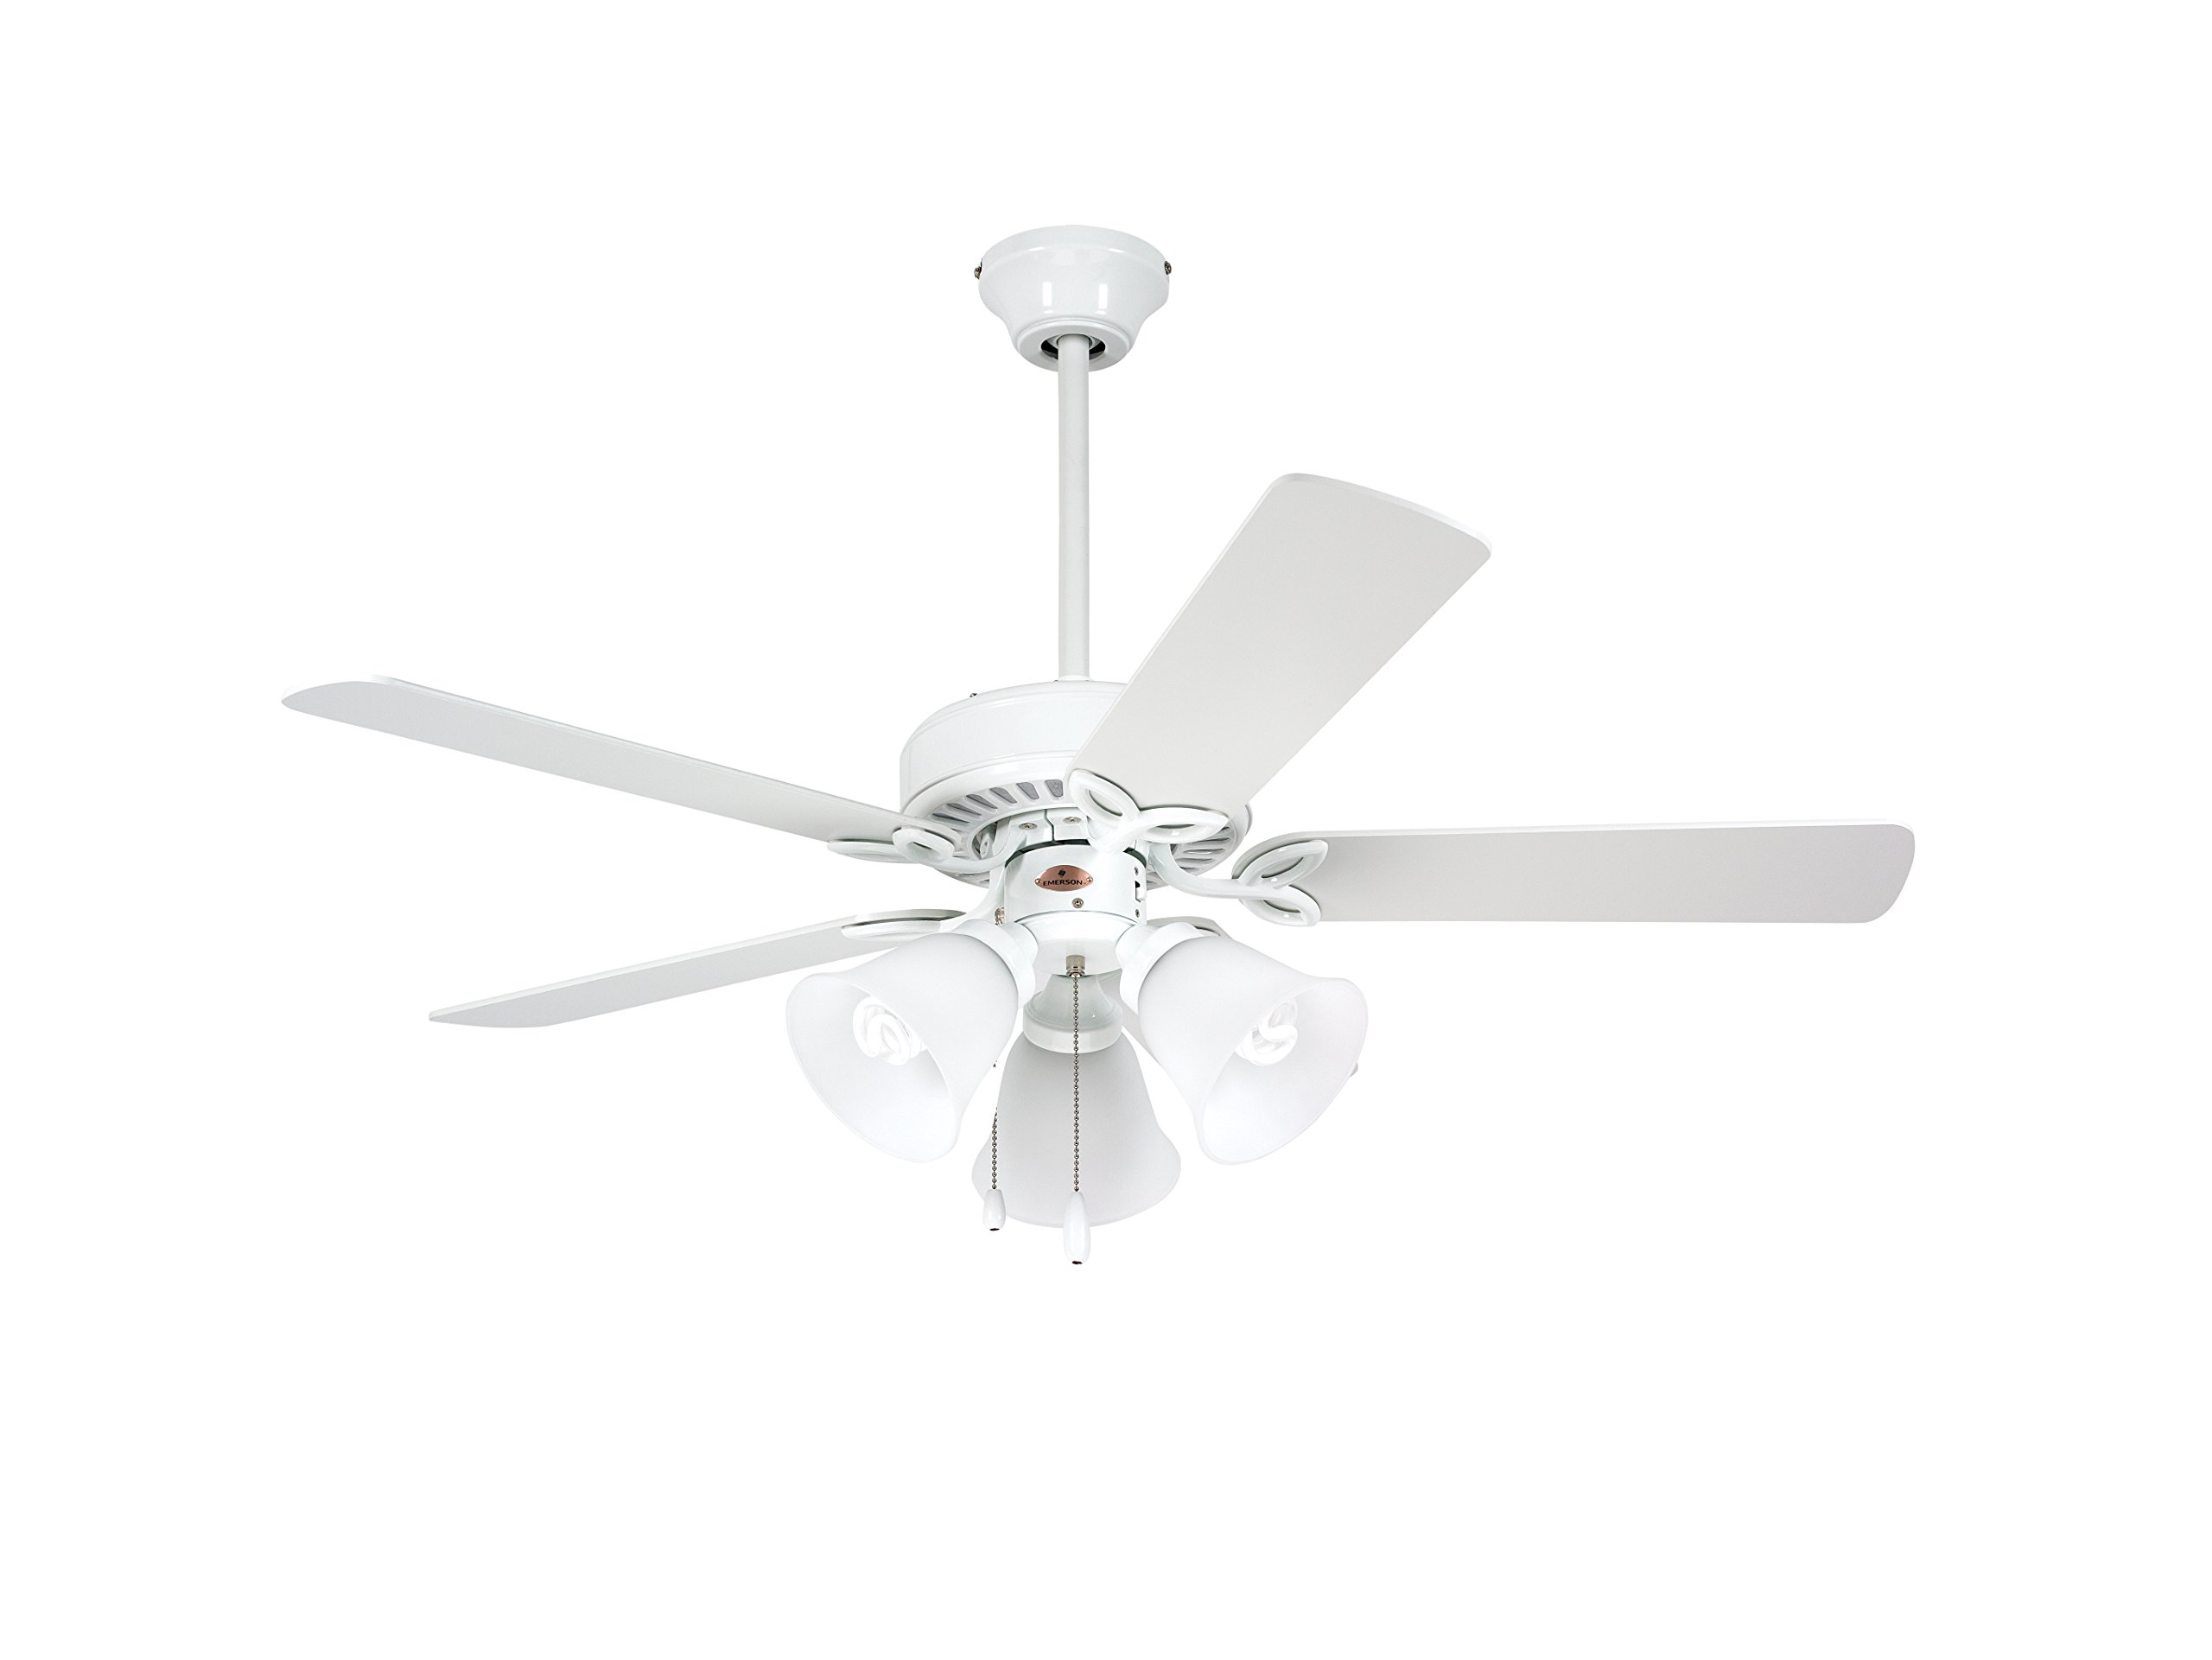 Emerson CF710WW Traditional Style 42-Inch 5-Blade Ceiling Fan, White with Frosted Globes